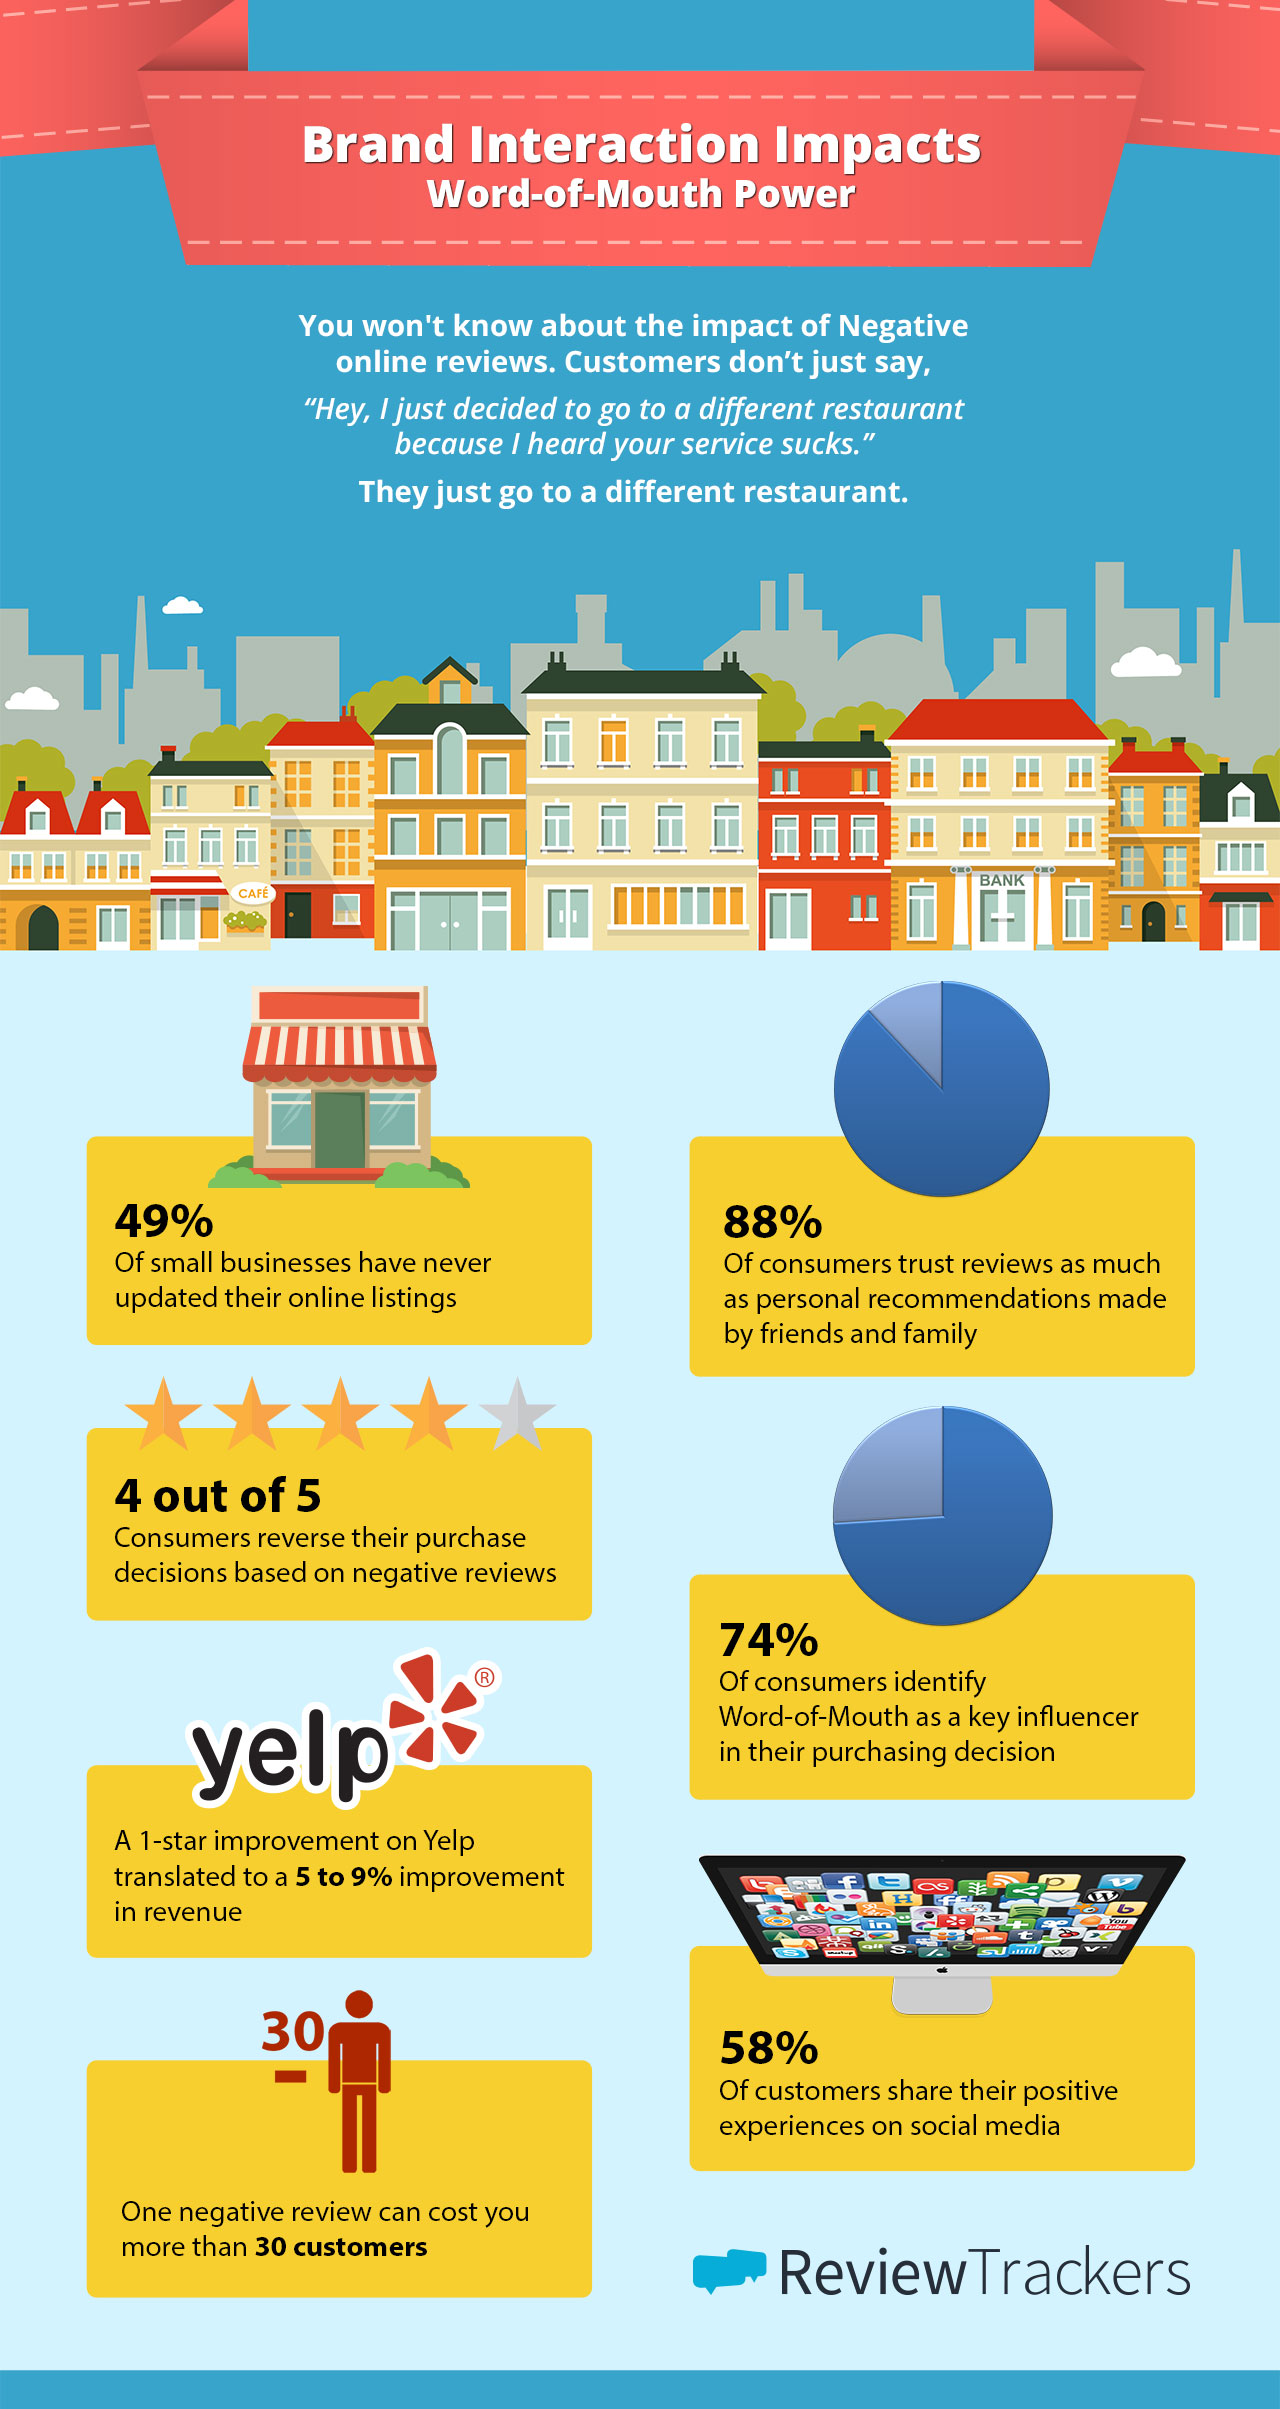 brand interaction has impact infographic